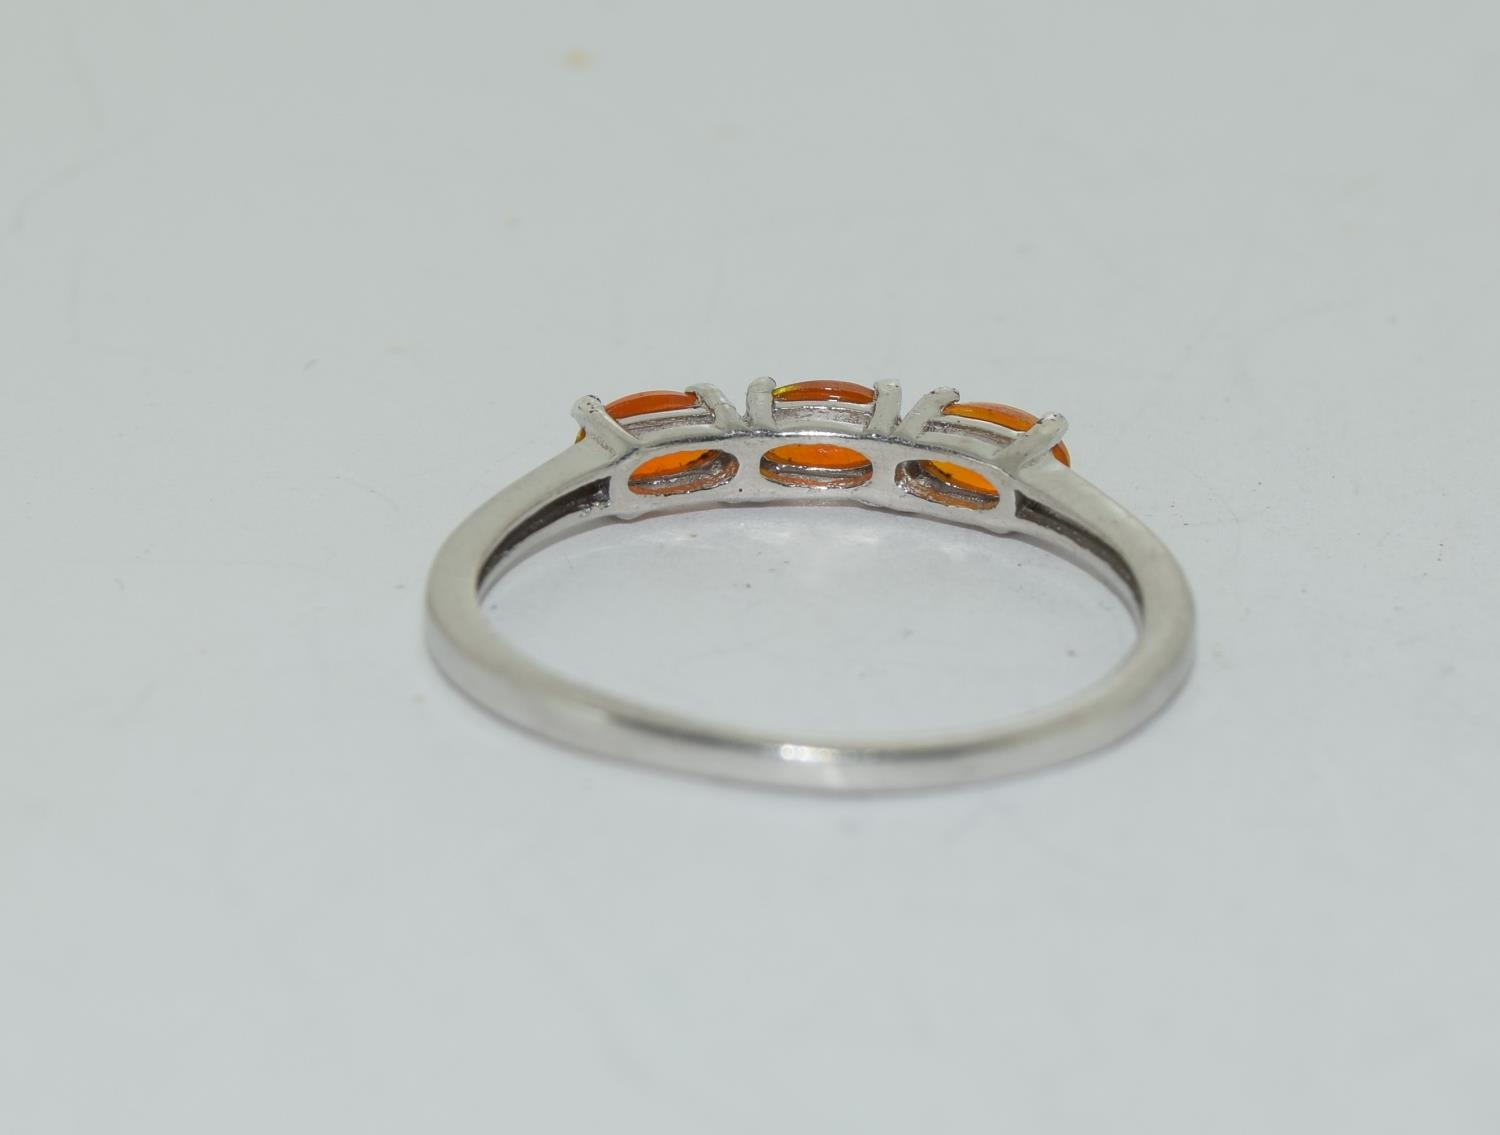 Ethiopian fire opal 925 silver ring, size S 1/2. - Image 3 of 3